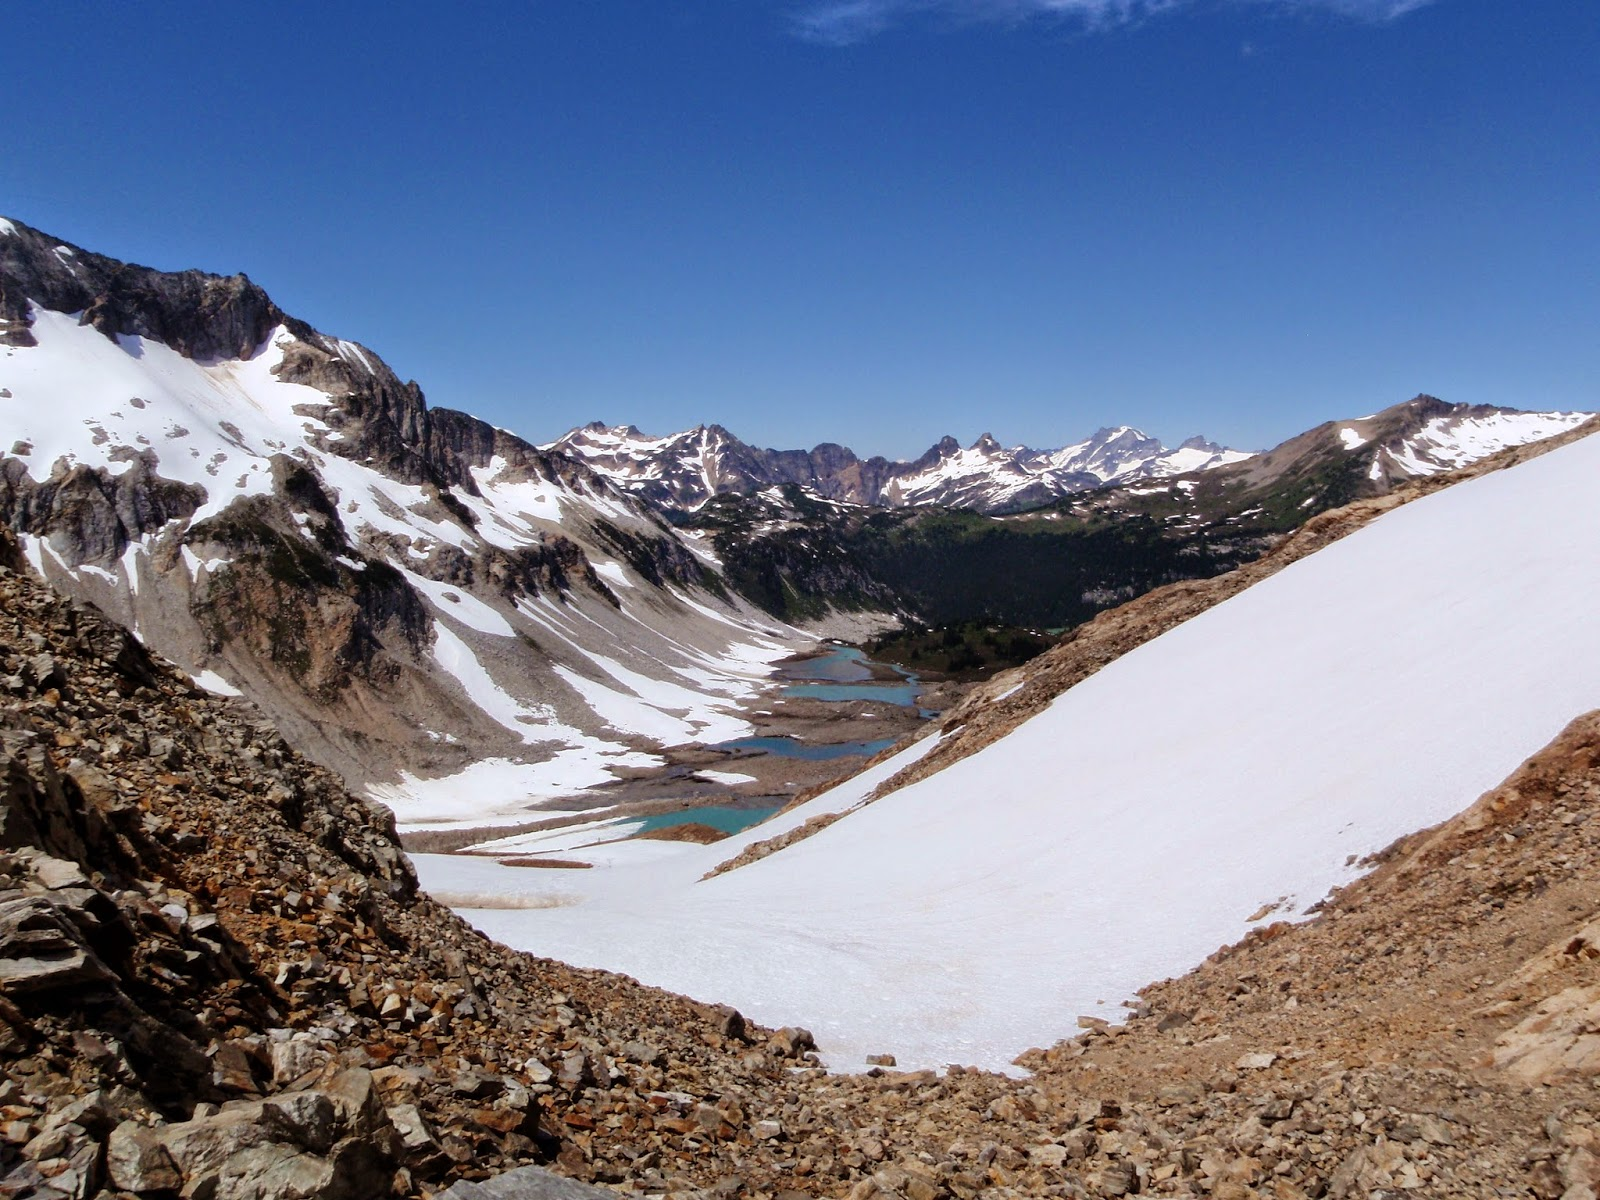 Upper Lyman Lakes from Spider Gap @ Glacier Peak Wilderness